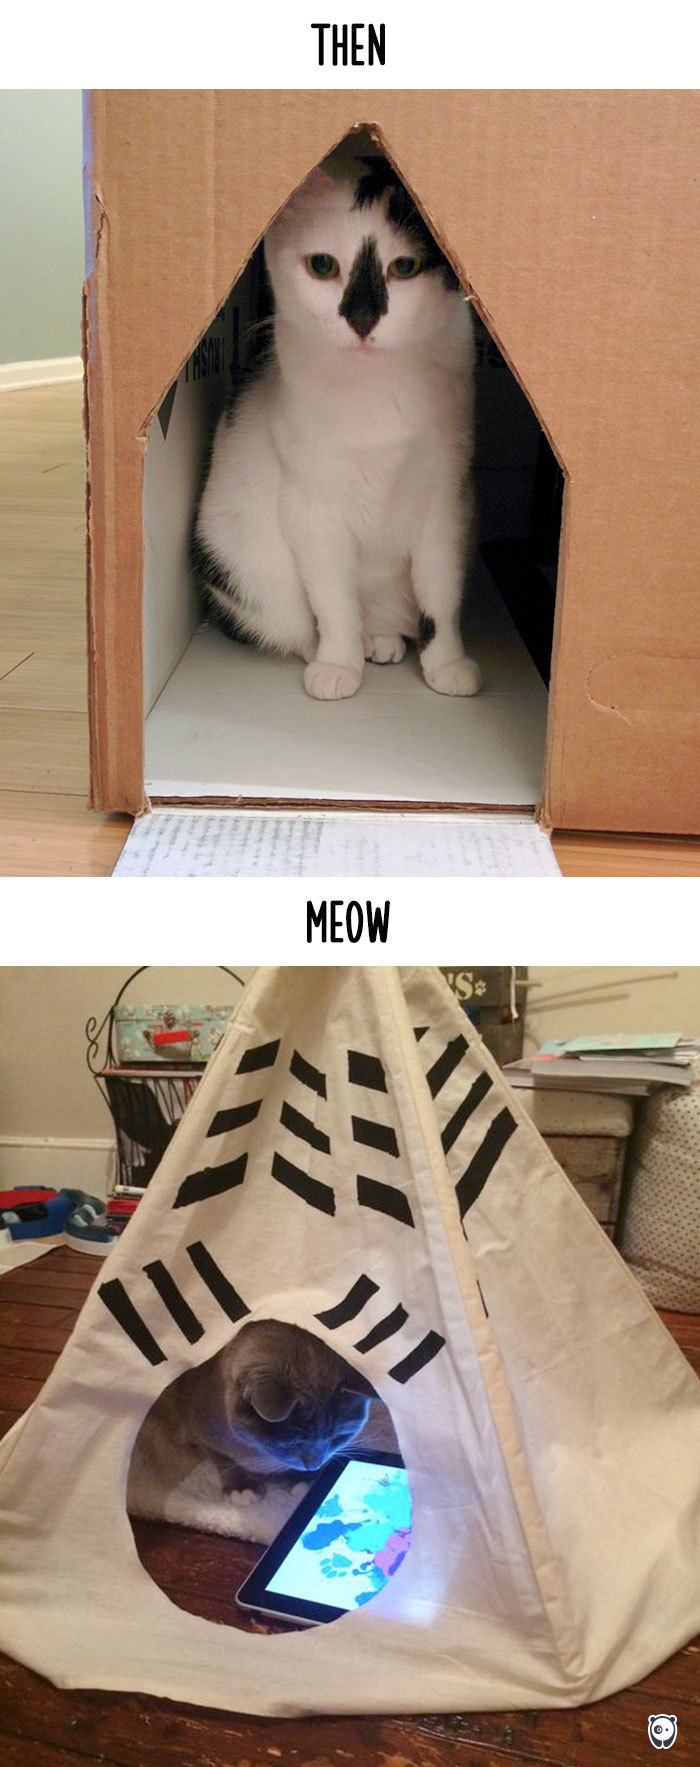 AD-Then-Now-How-Technology-Has-Changed-Cats-Lives-12